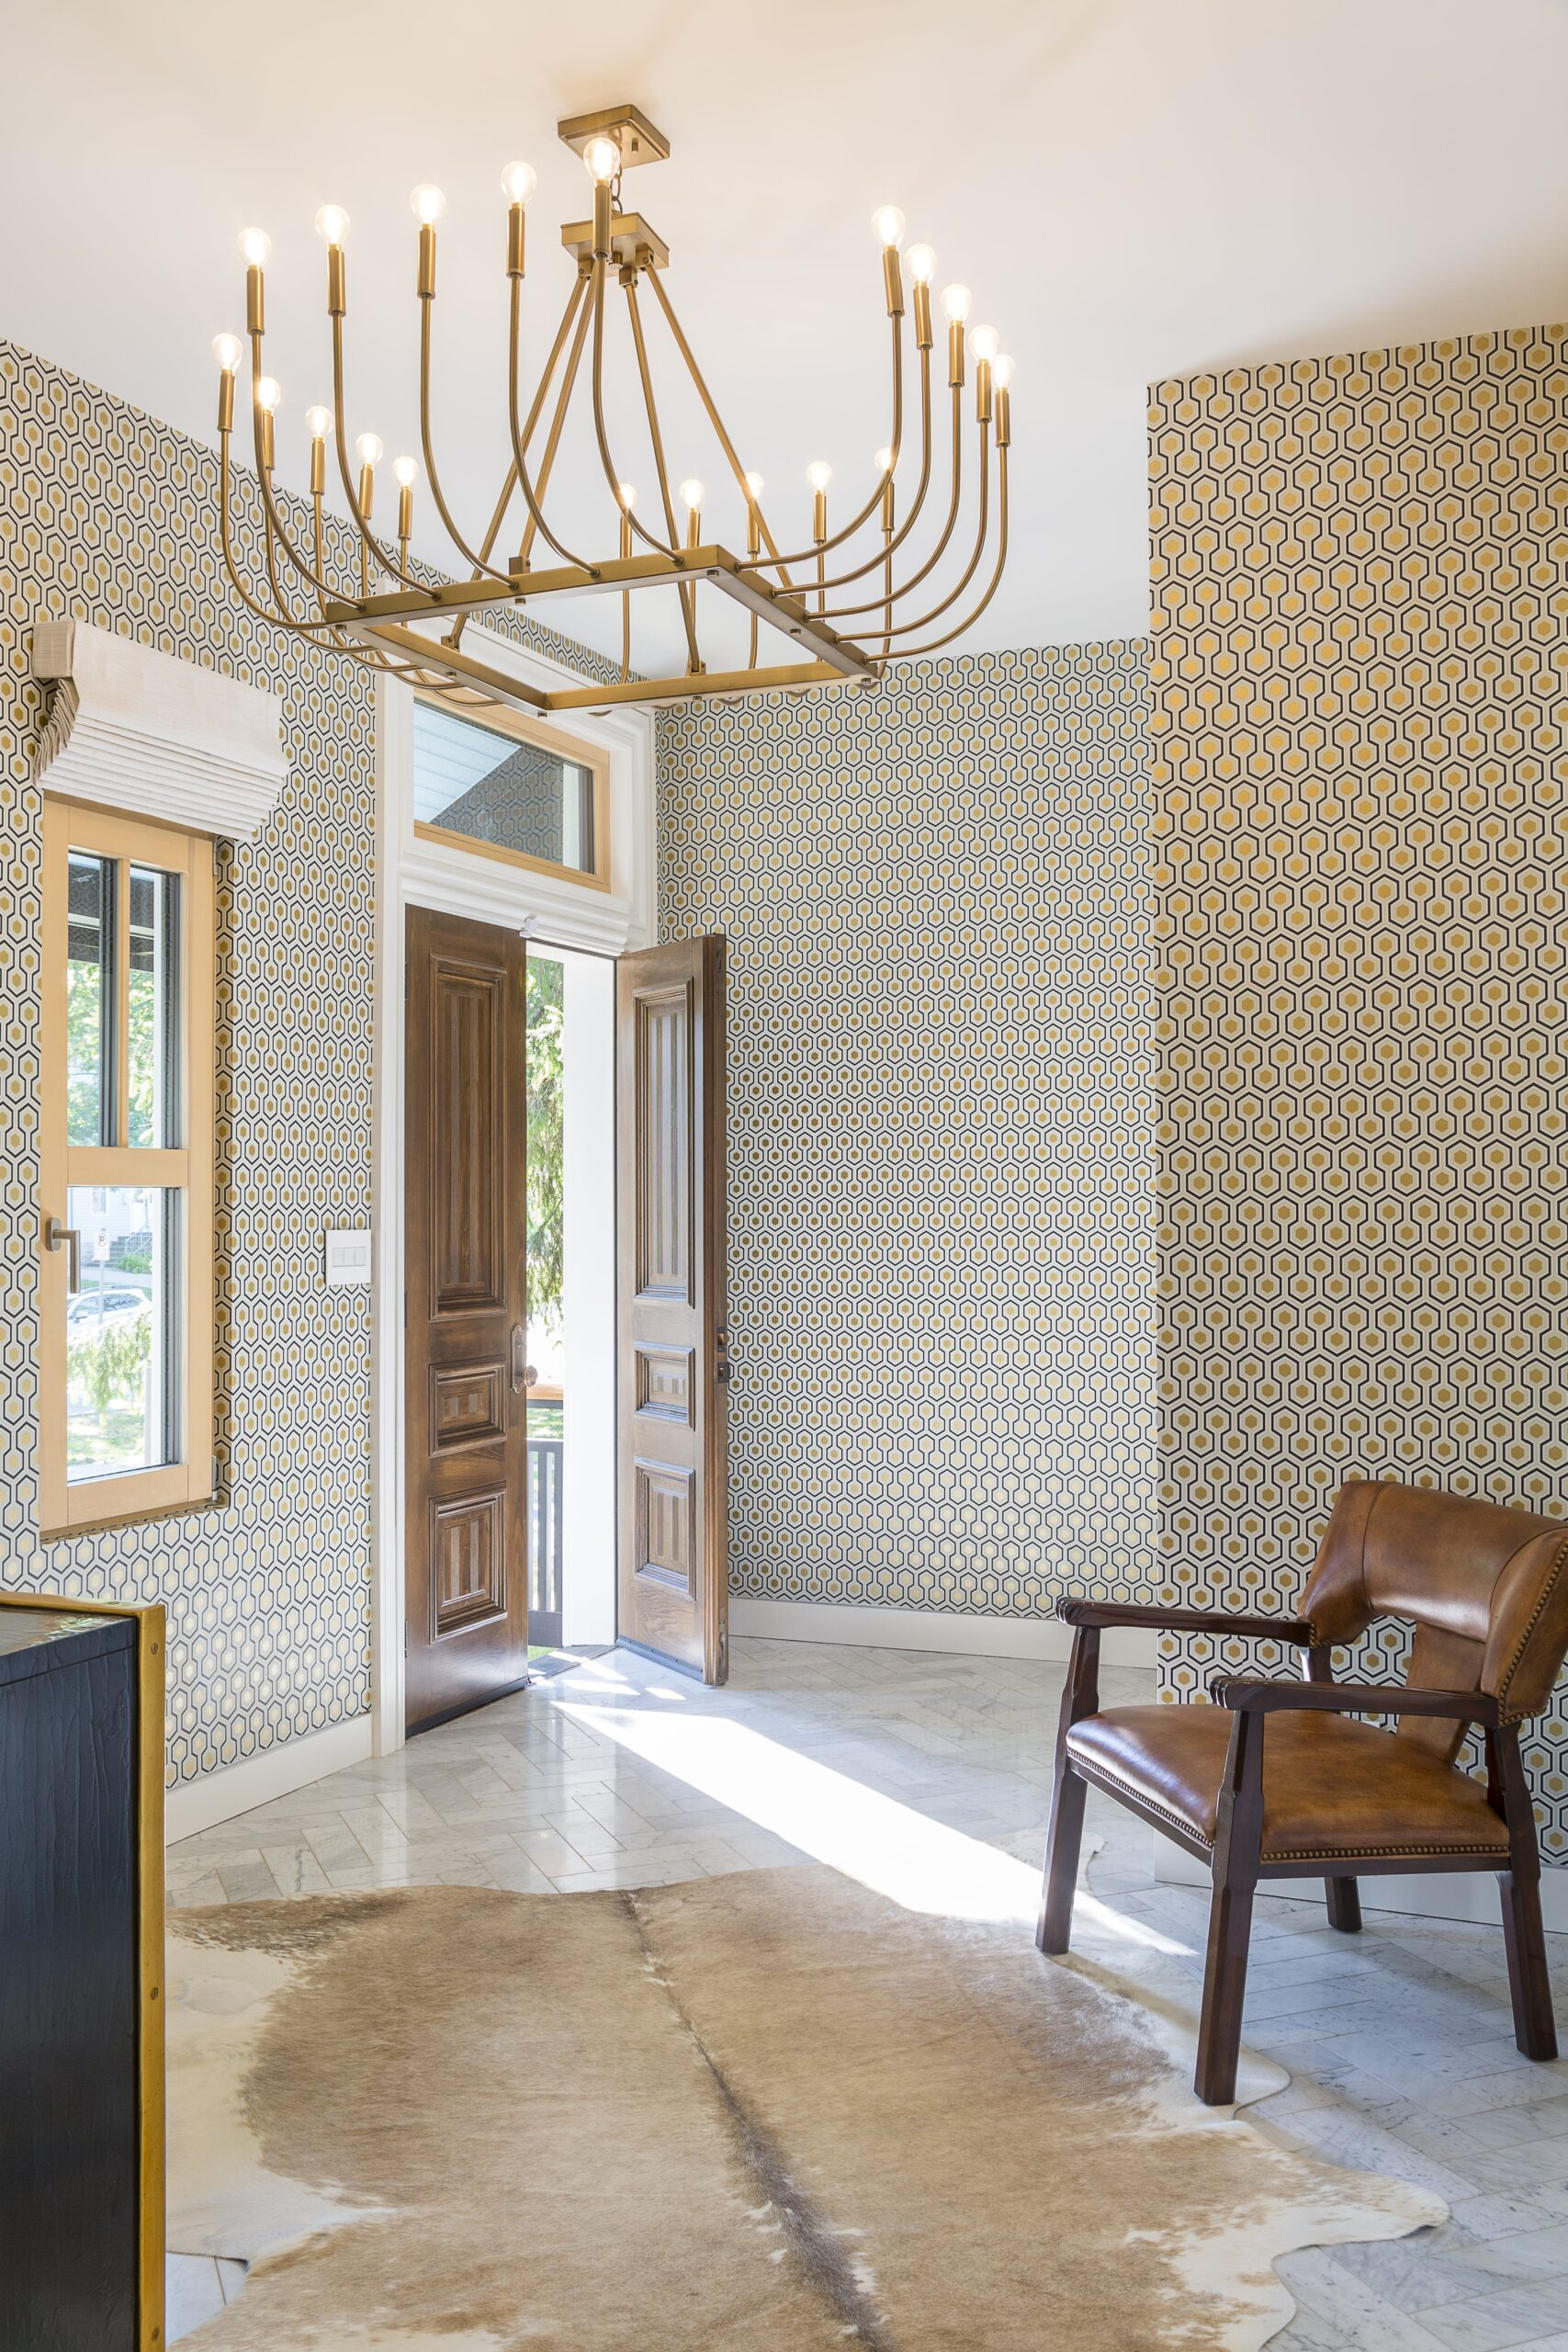 historic renovation entryway with modern gold chandelier and geometric printed wallpaper